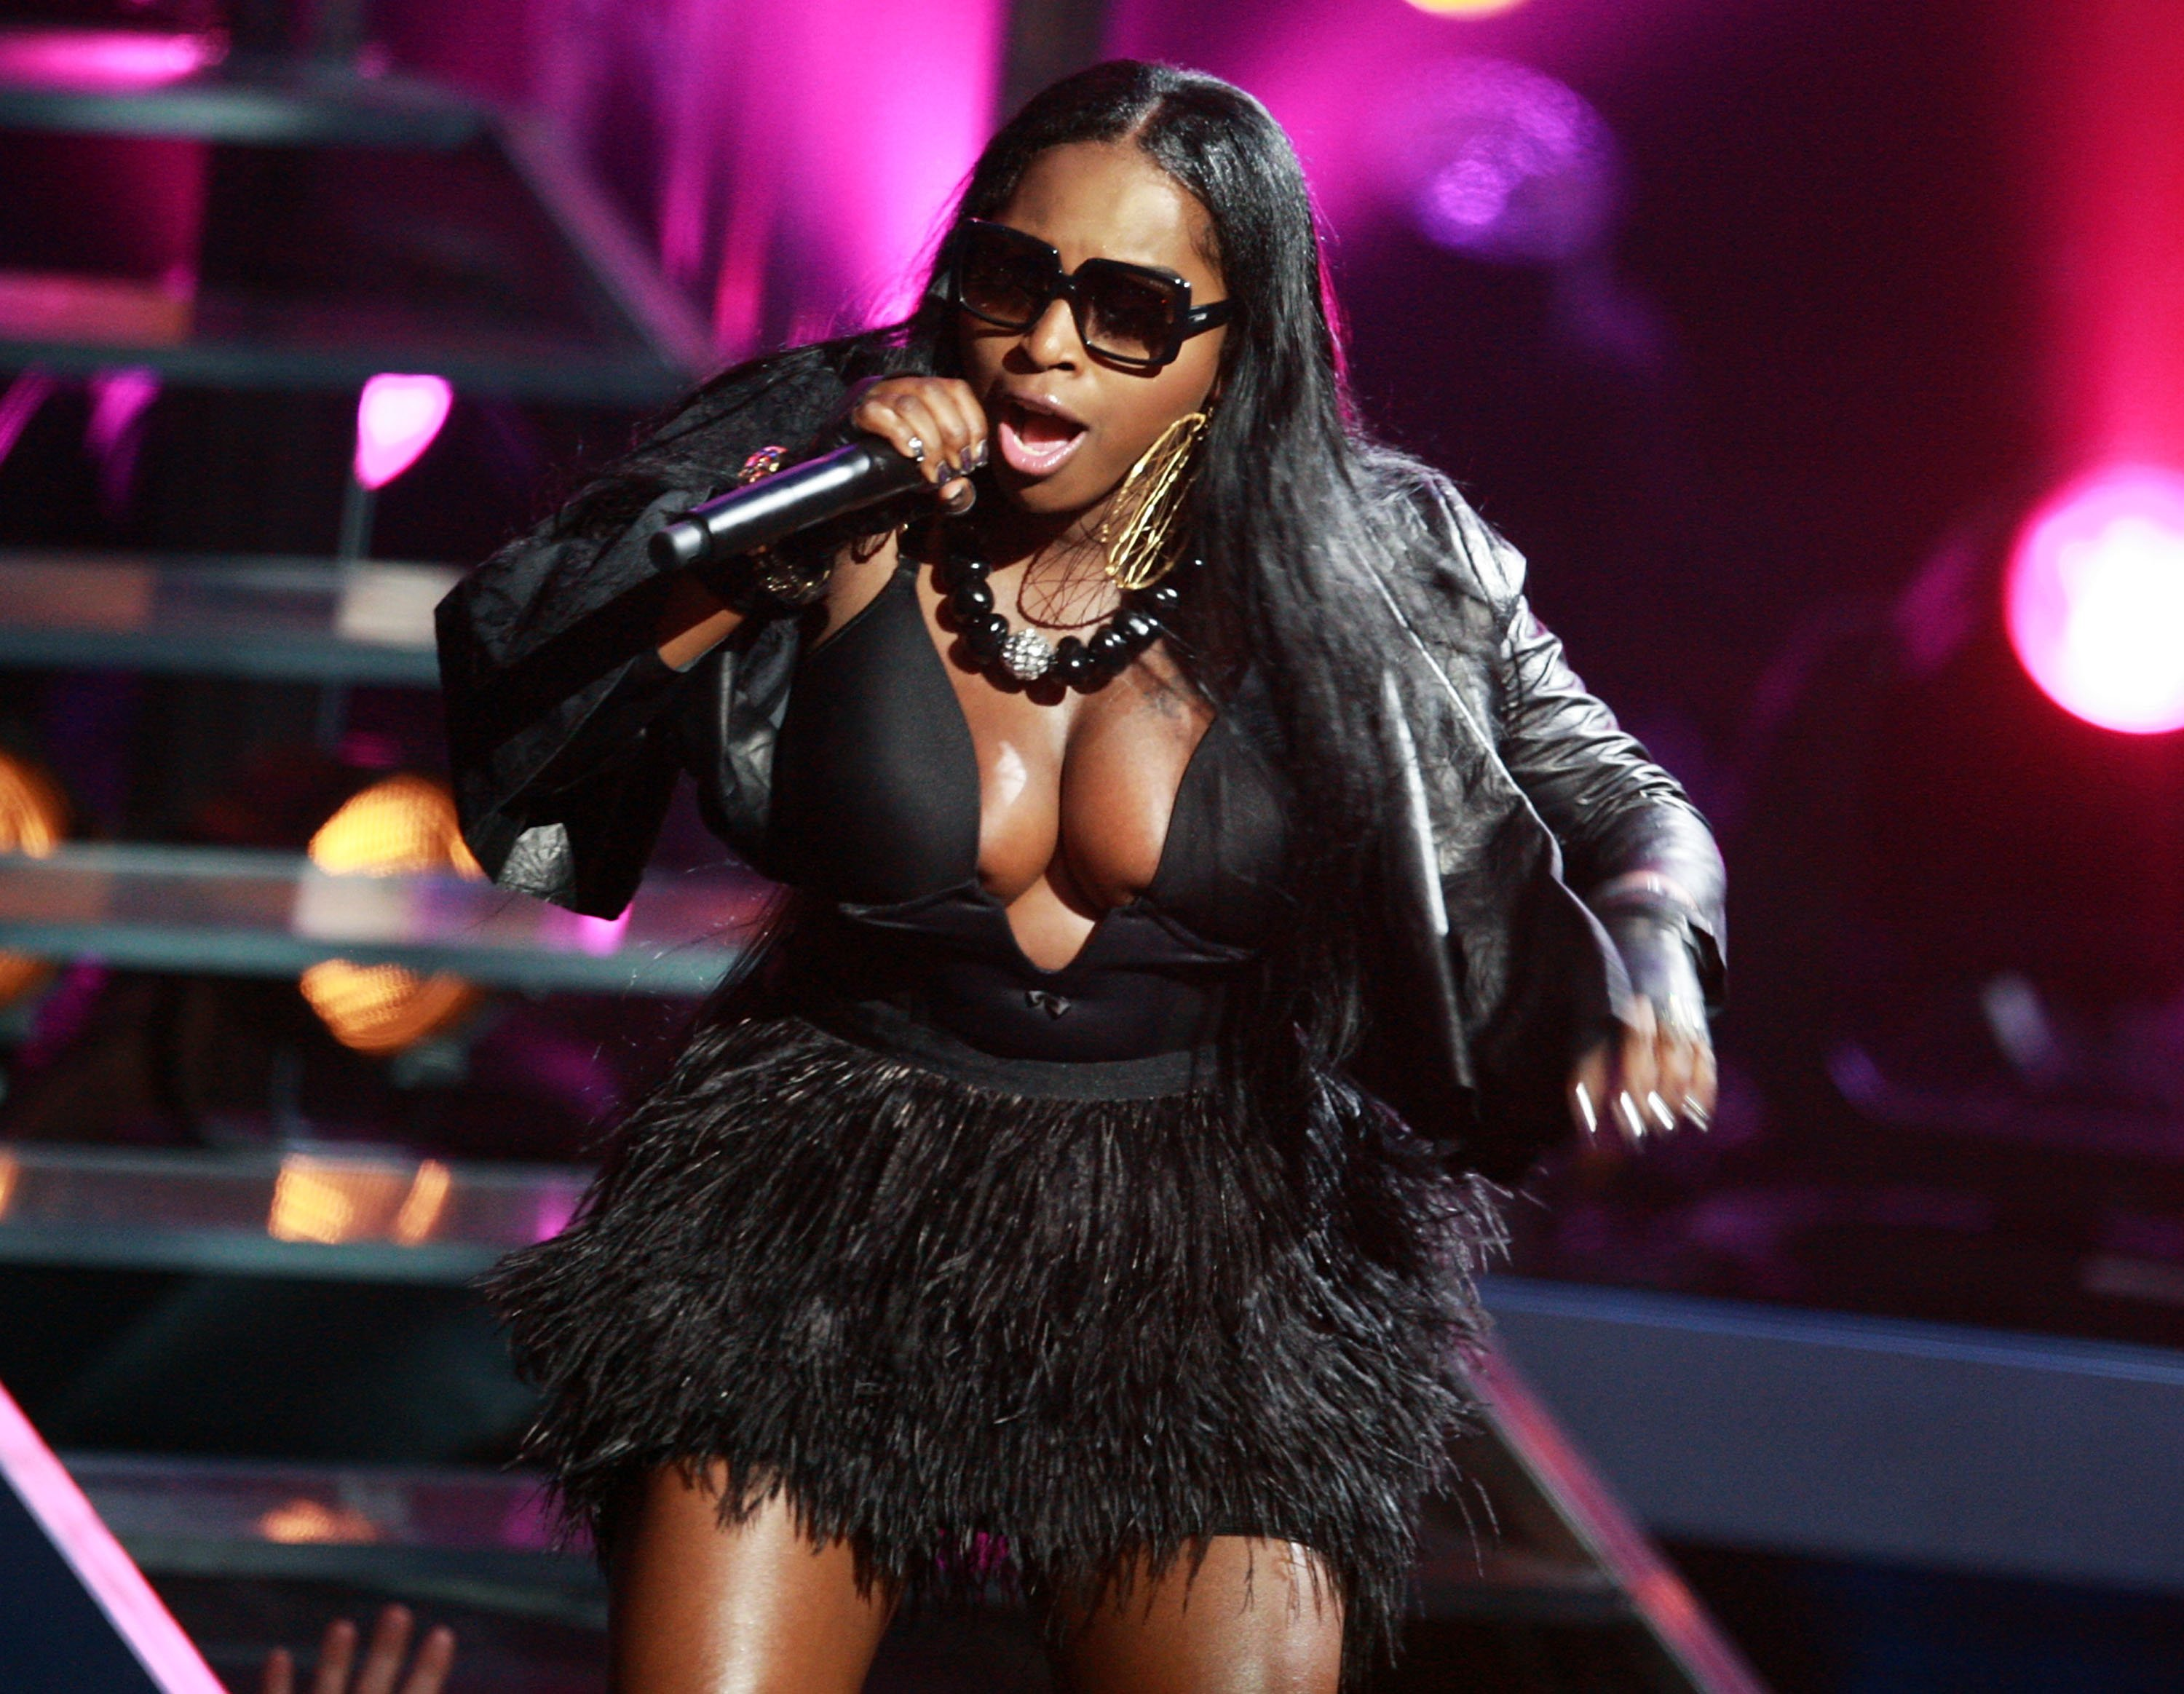 Foxy Brown performs onstage at the 2009 VH1 Hip Hop Honors at the Brooklyn Academy of Music on September 23, 2009.   Photo: GettyImages